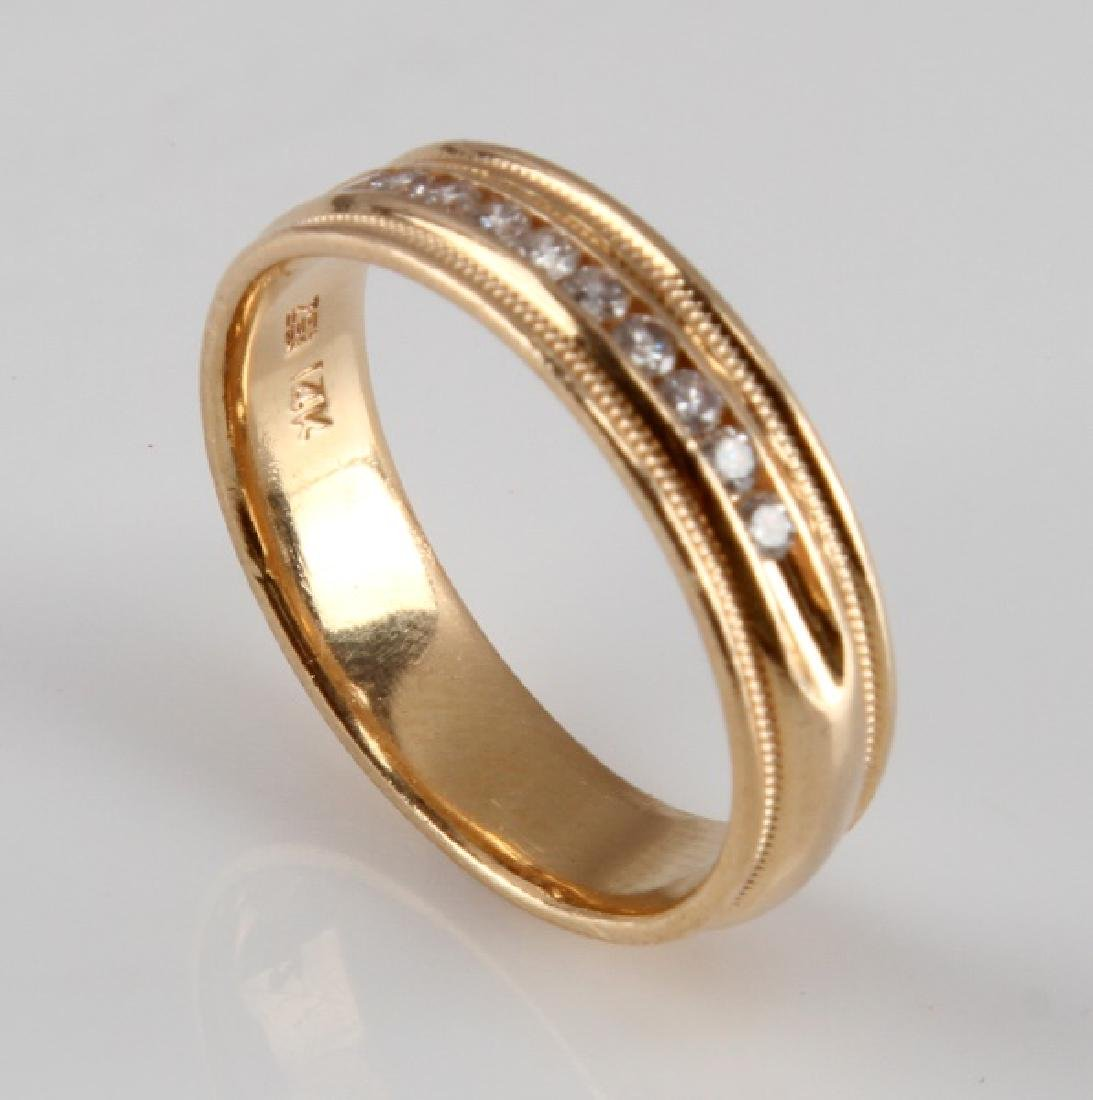 MENS 14KT YELLOW GOLD & DIAMOND RING BAND .15 TCW - 3